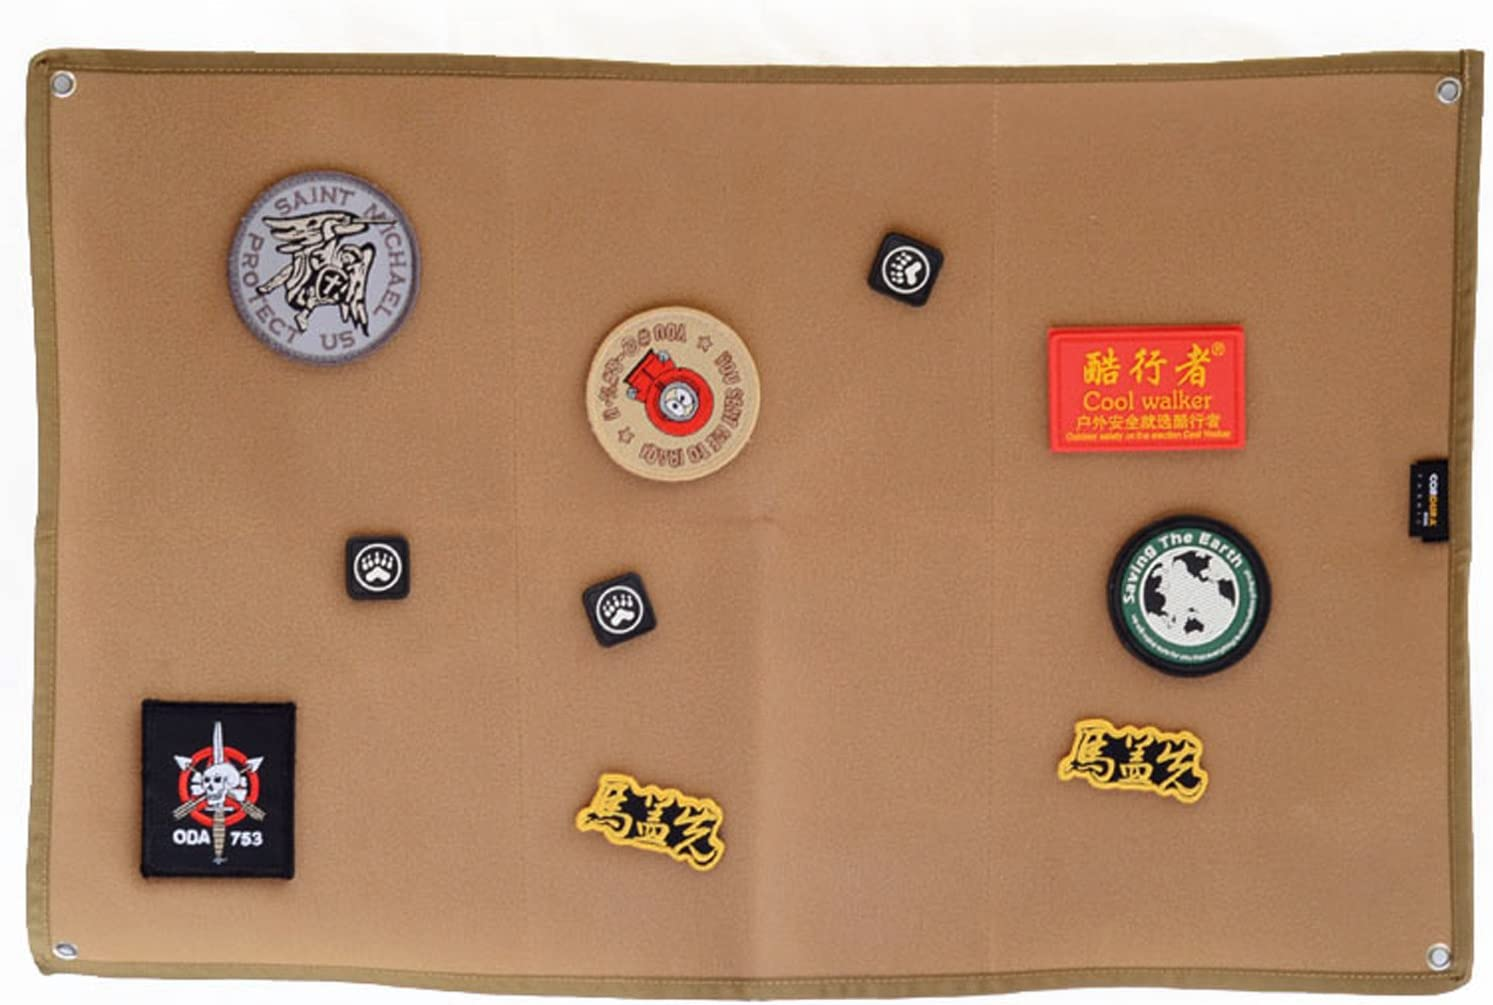 LytHarvest 58x38cm Tactical Patches Military Holde New York Mall Holder Patch Max 84% OFF